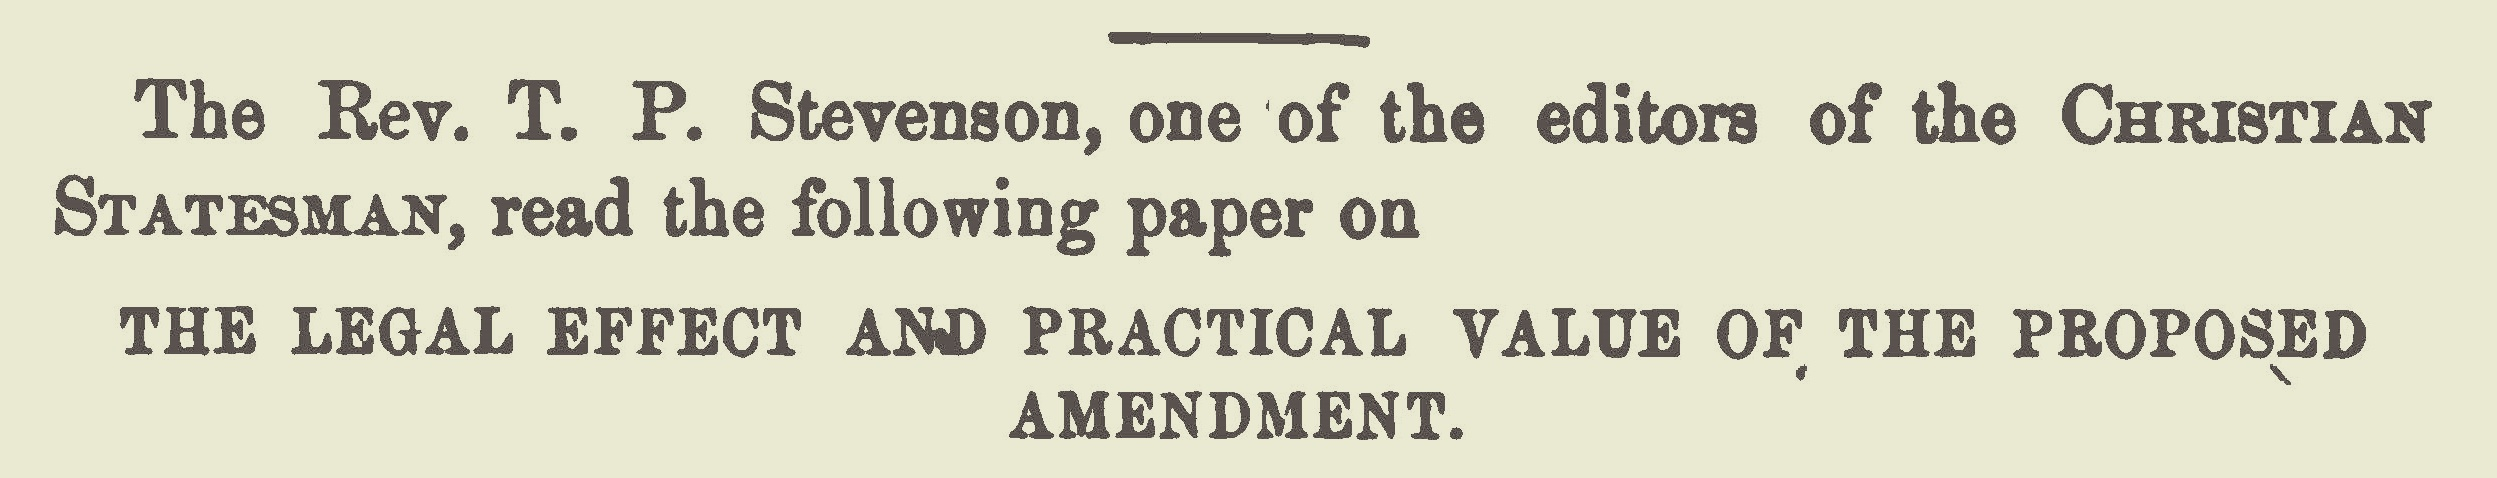 Stevenson, Thomas Patton, The Legal Effect and Practical Value of the Proposed Amendment Title Page.jpg